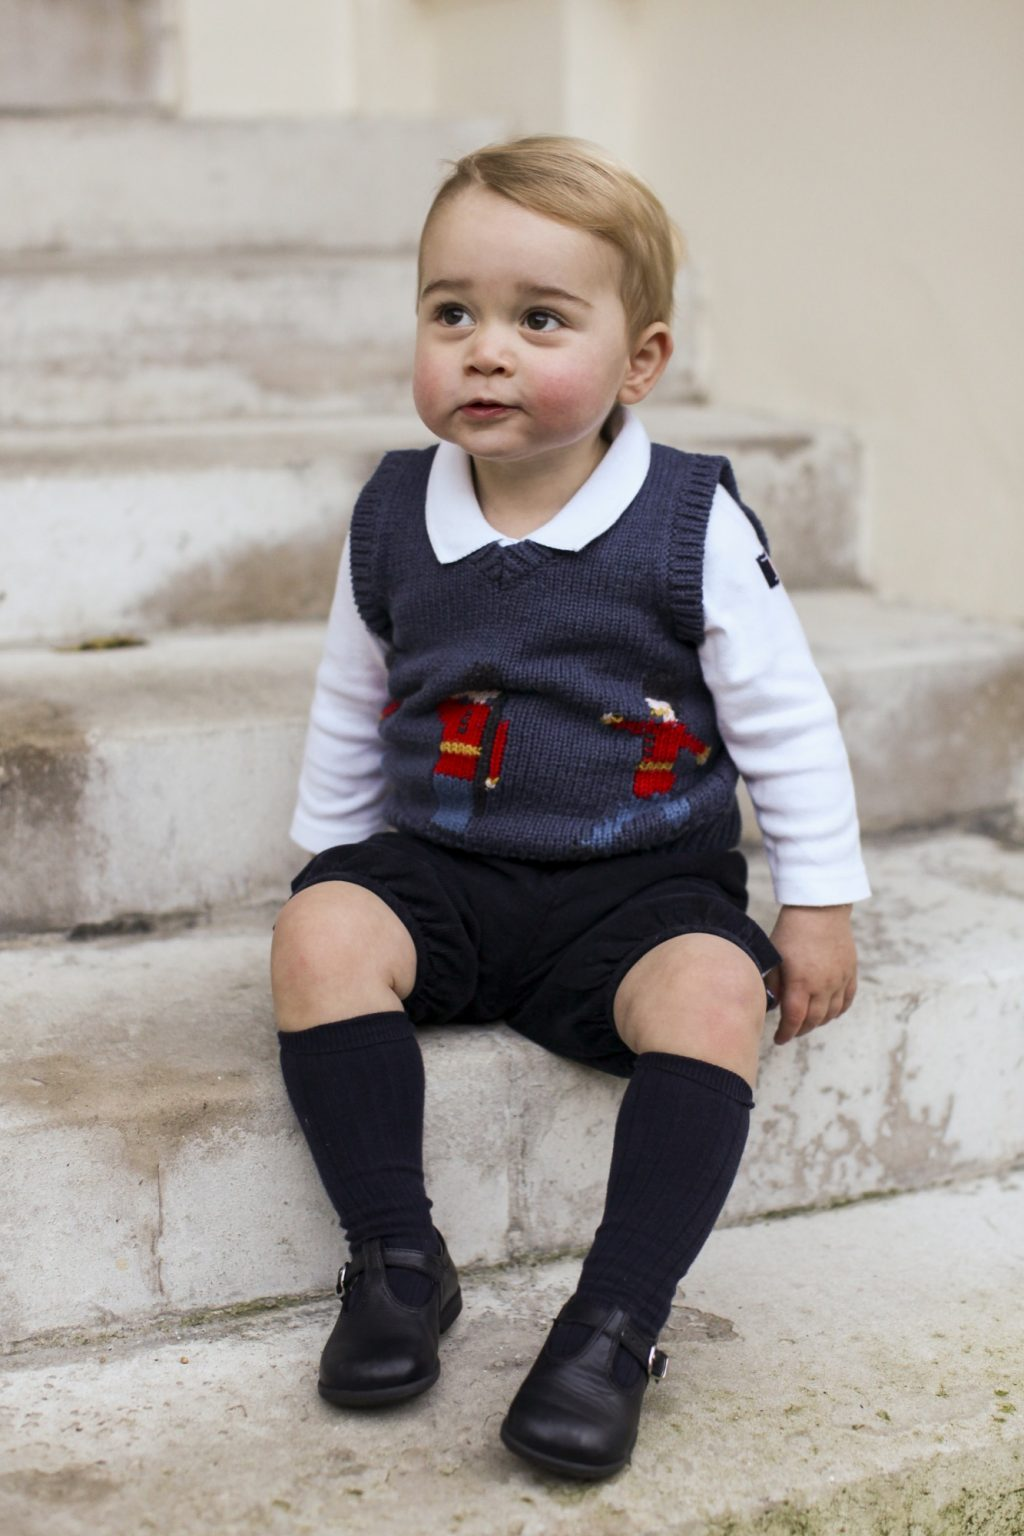 Why Everyone Is Still Talking About Prince George's Birthday Portrait